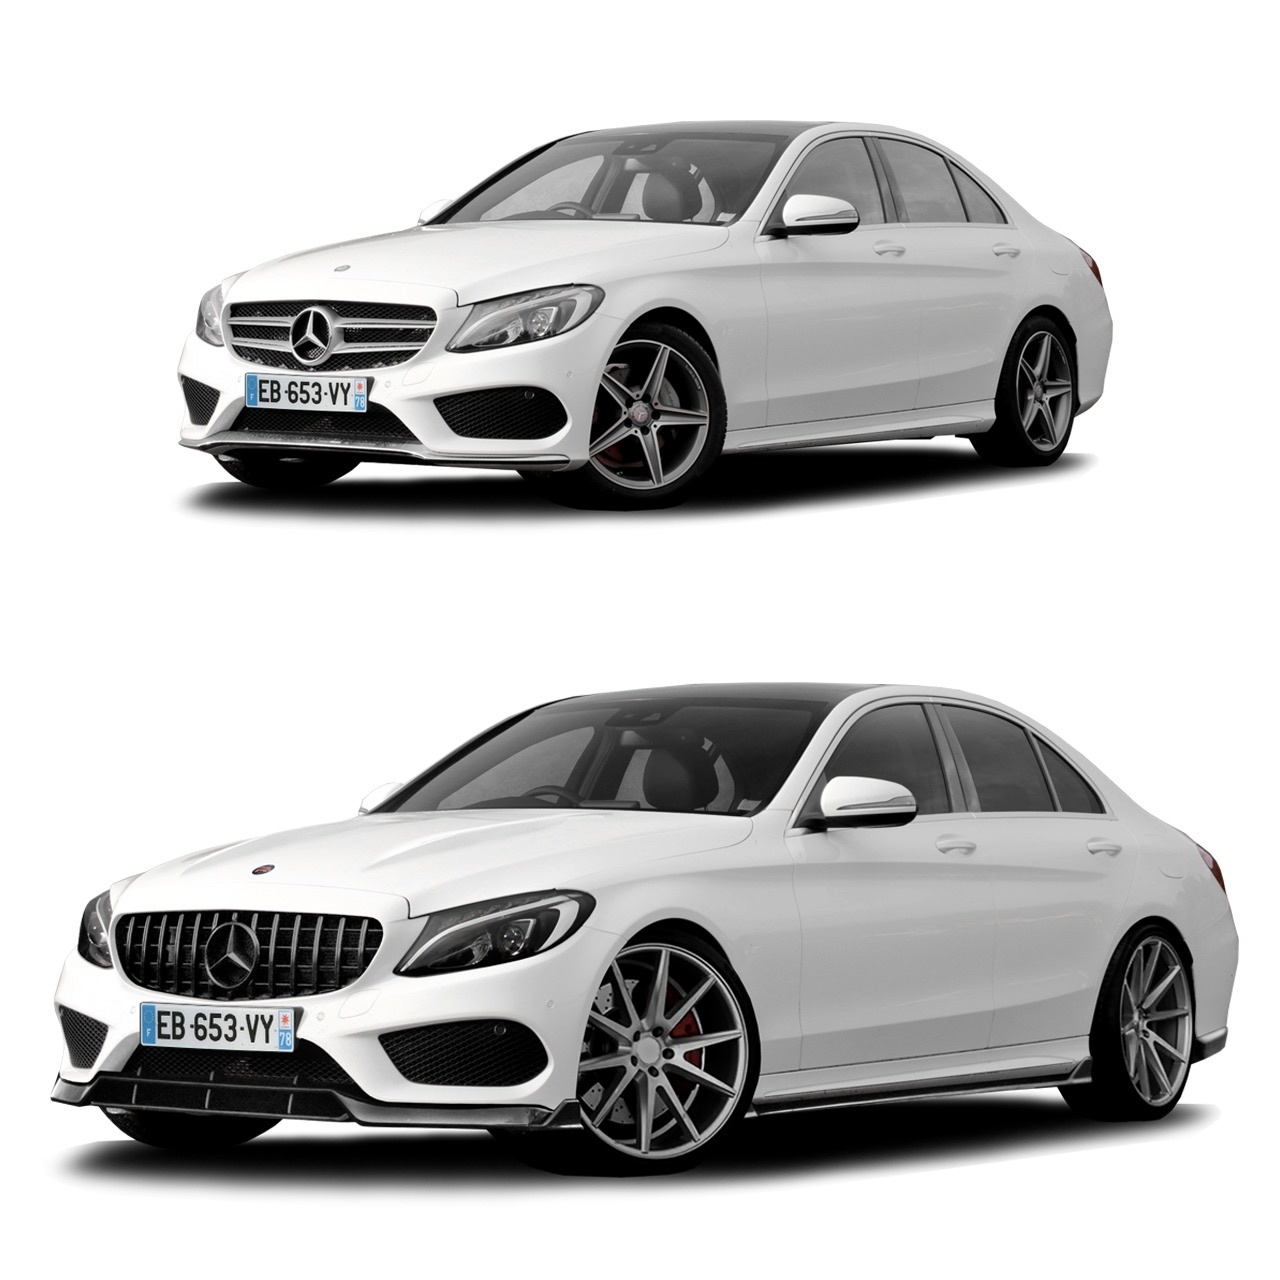 Renegade body kit for Mercedes Benz C-Class W205 latest model